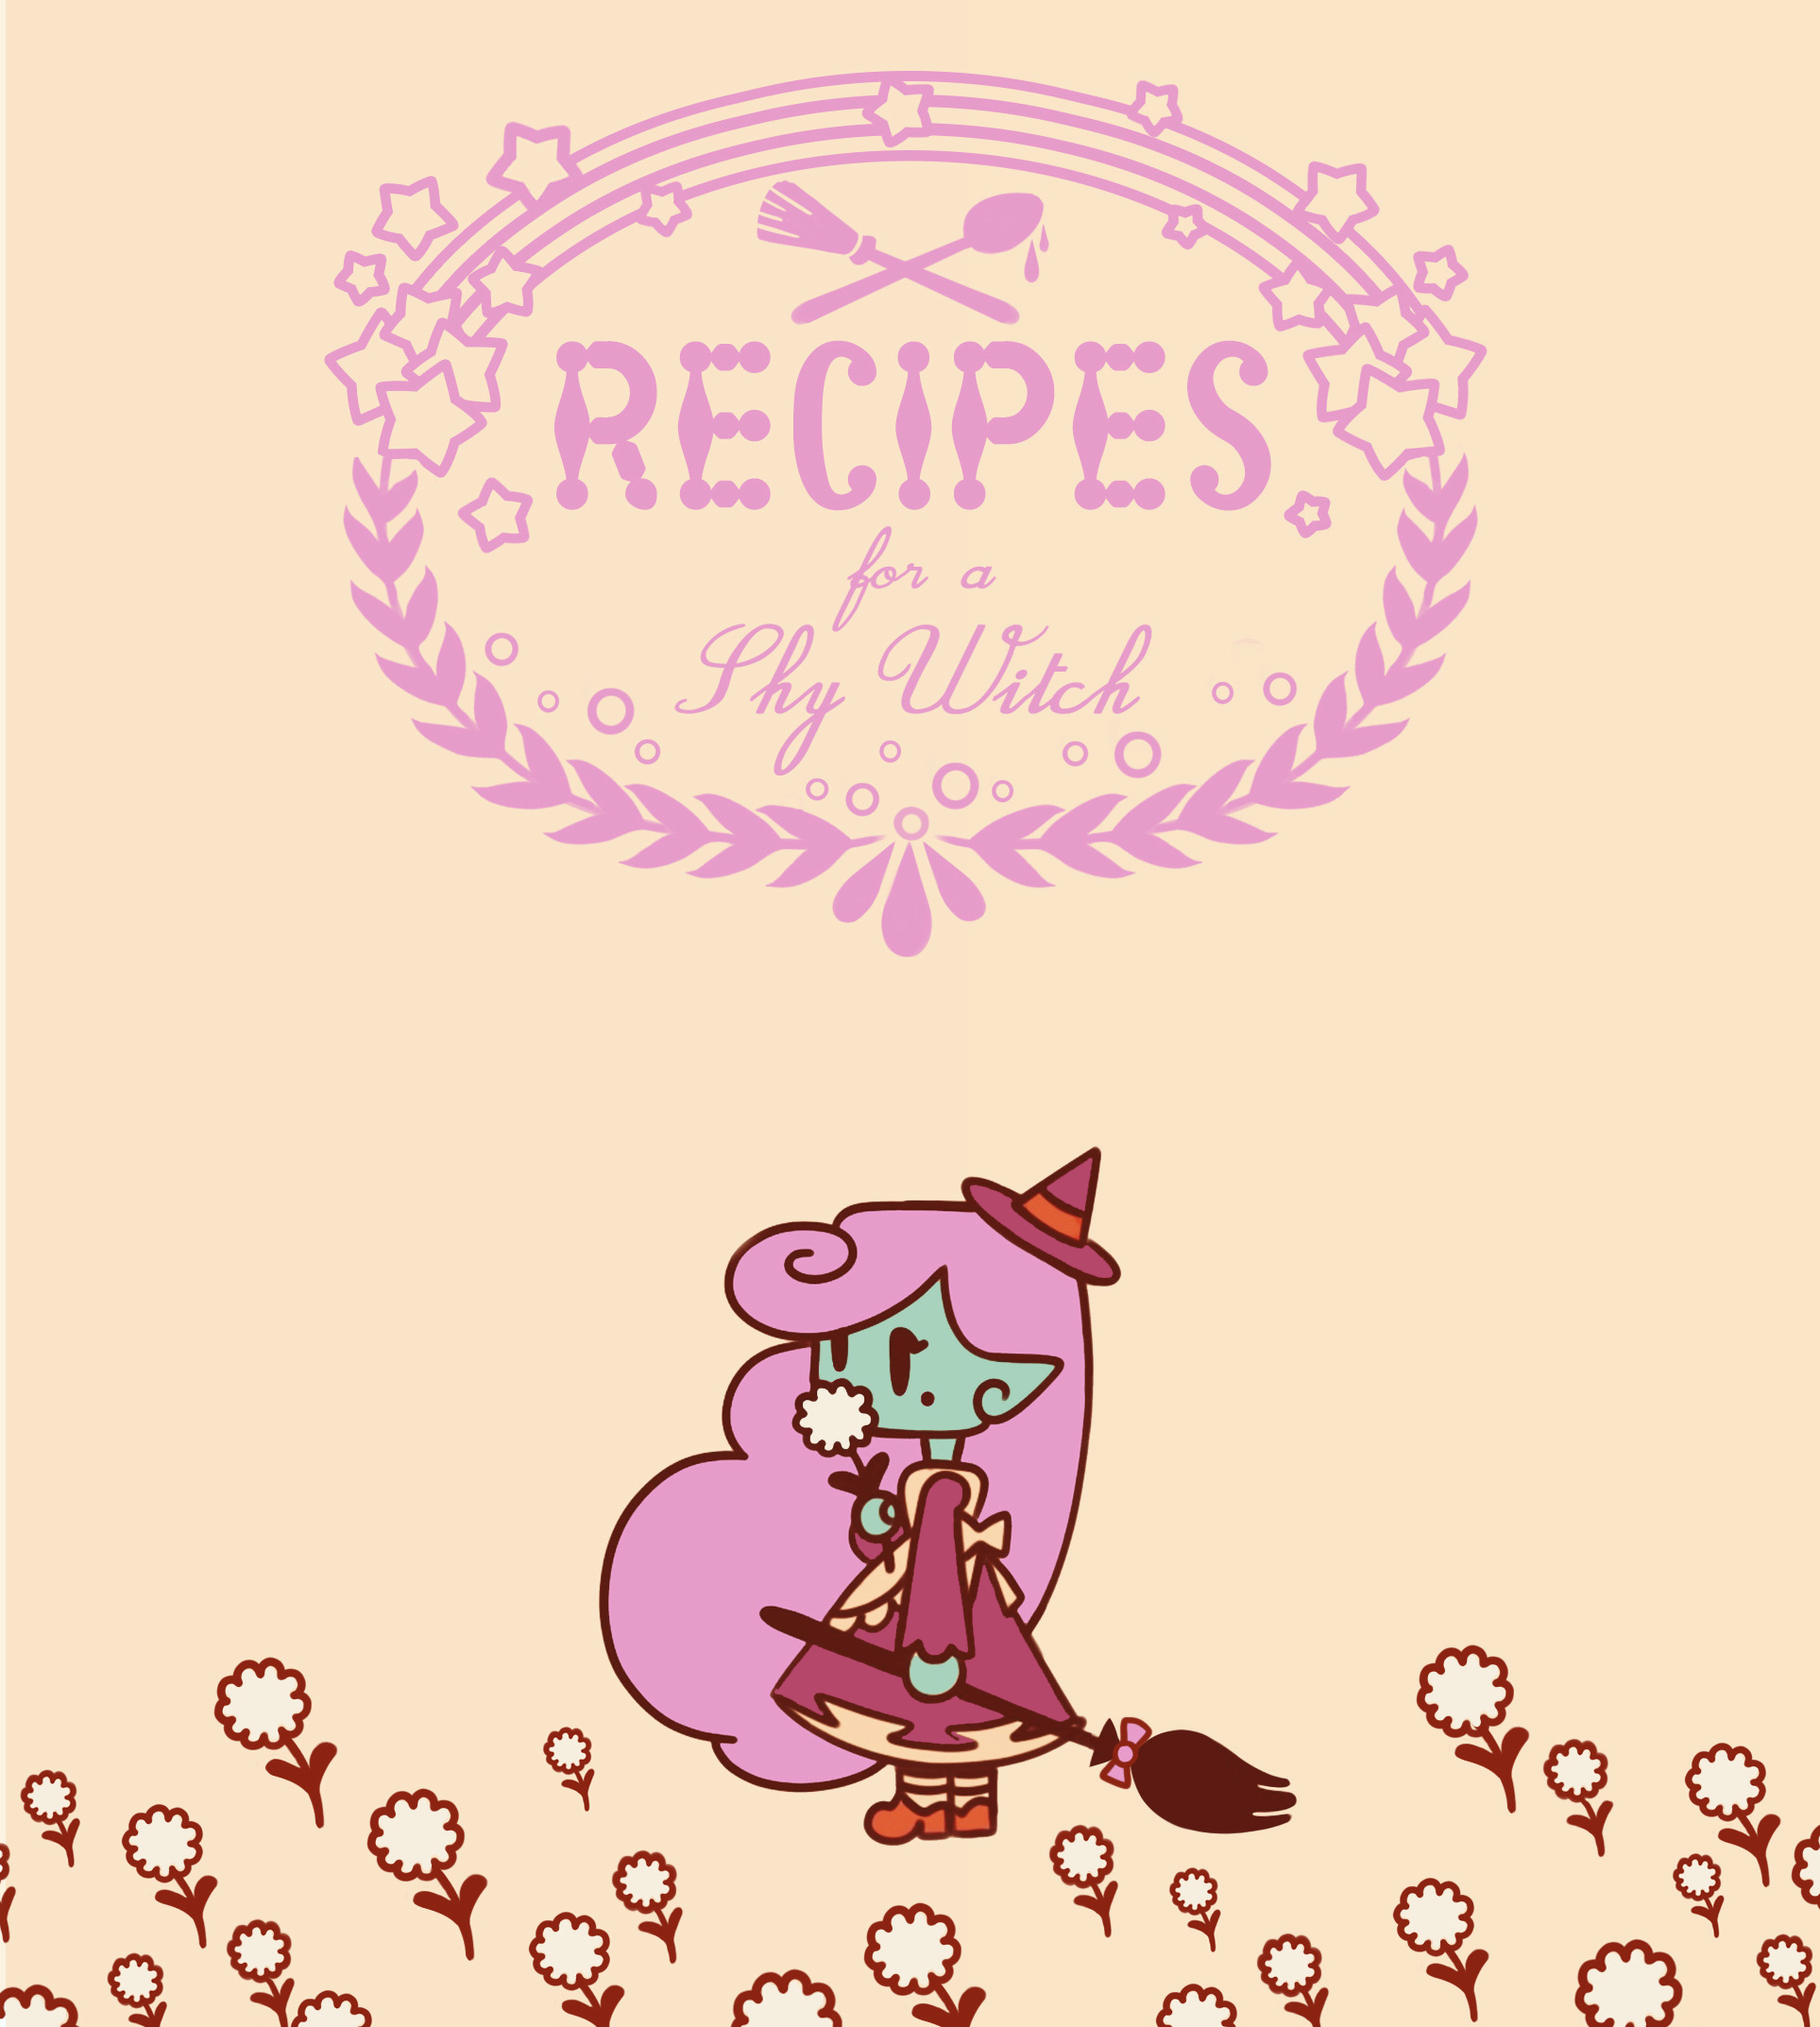 recipesForAShyWitch_bestColors.png